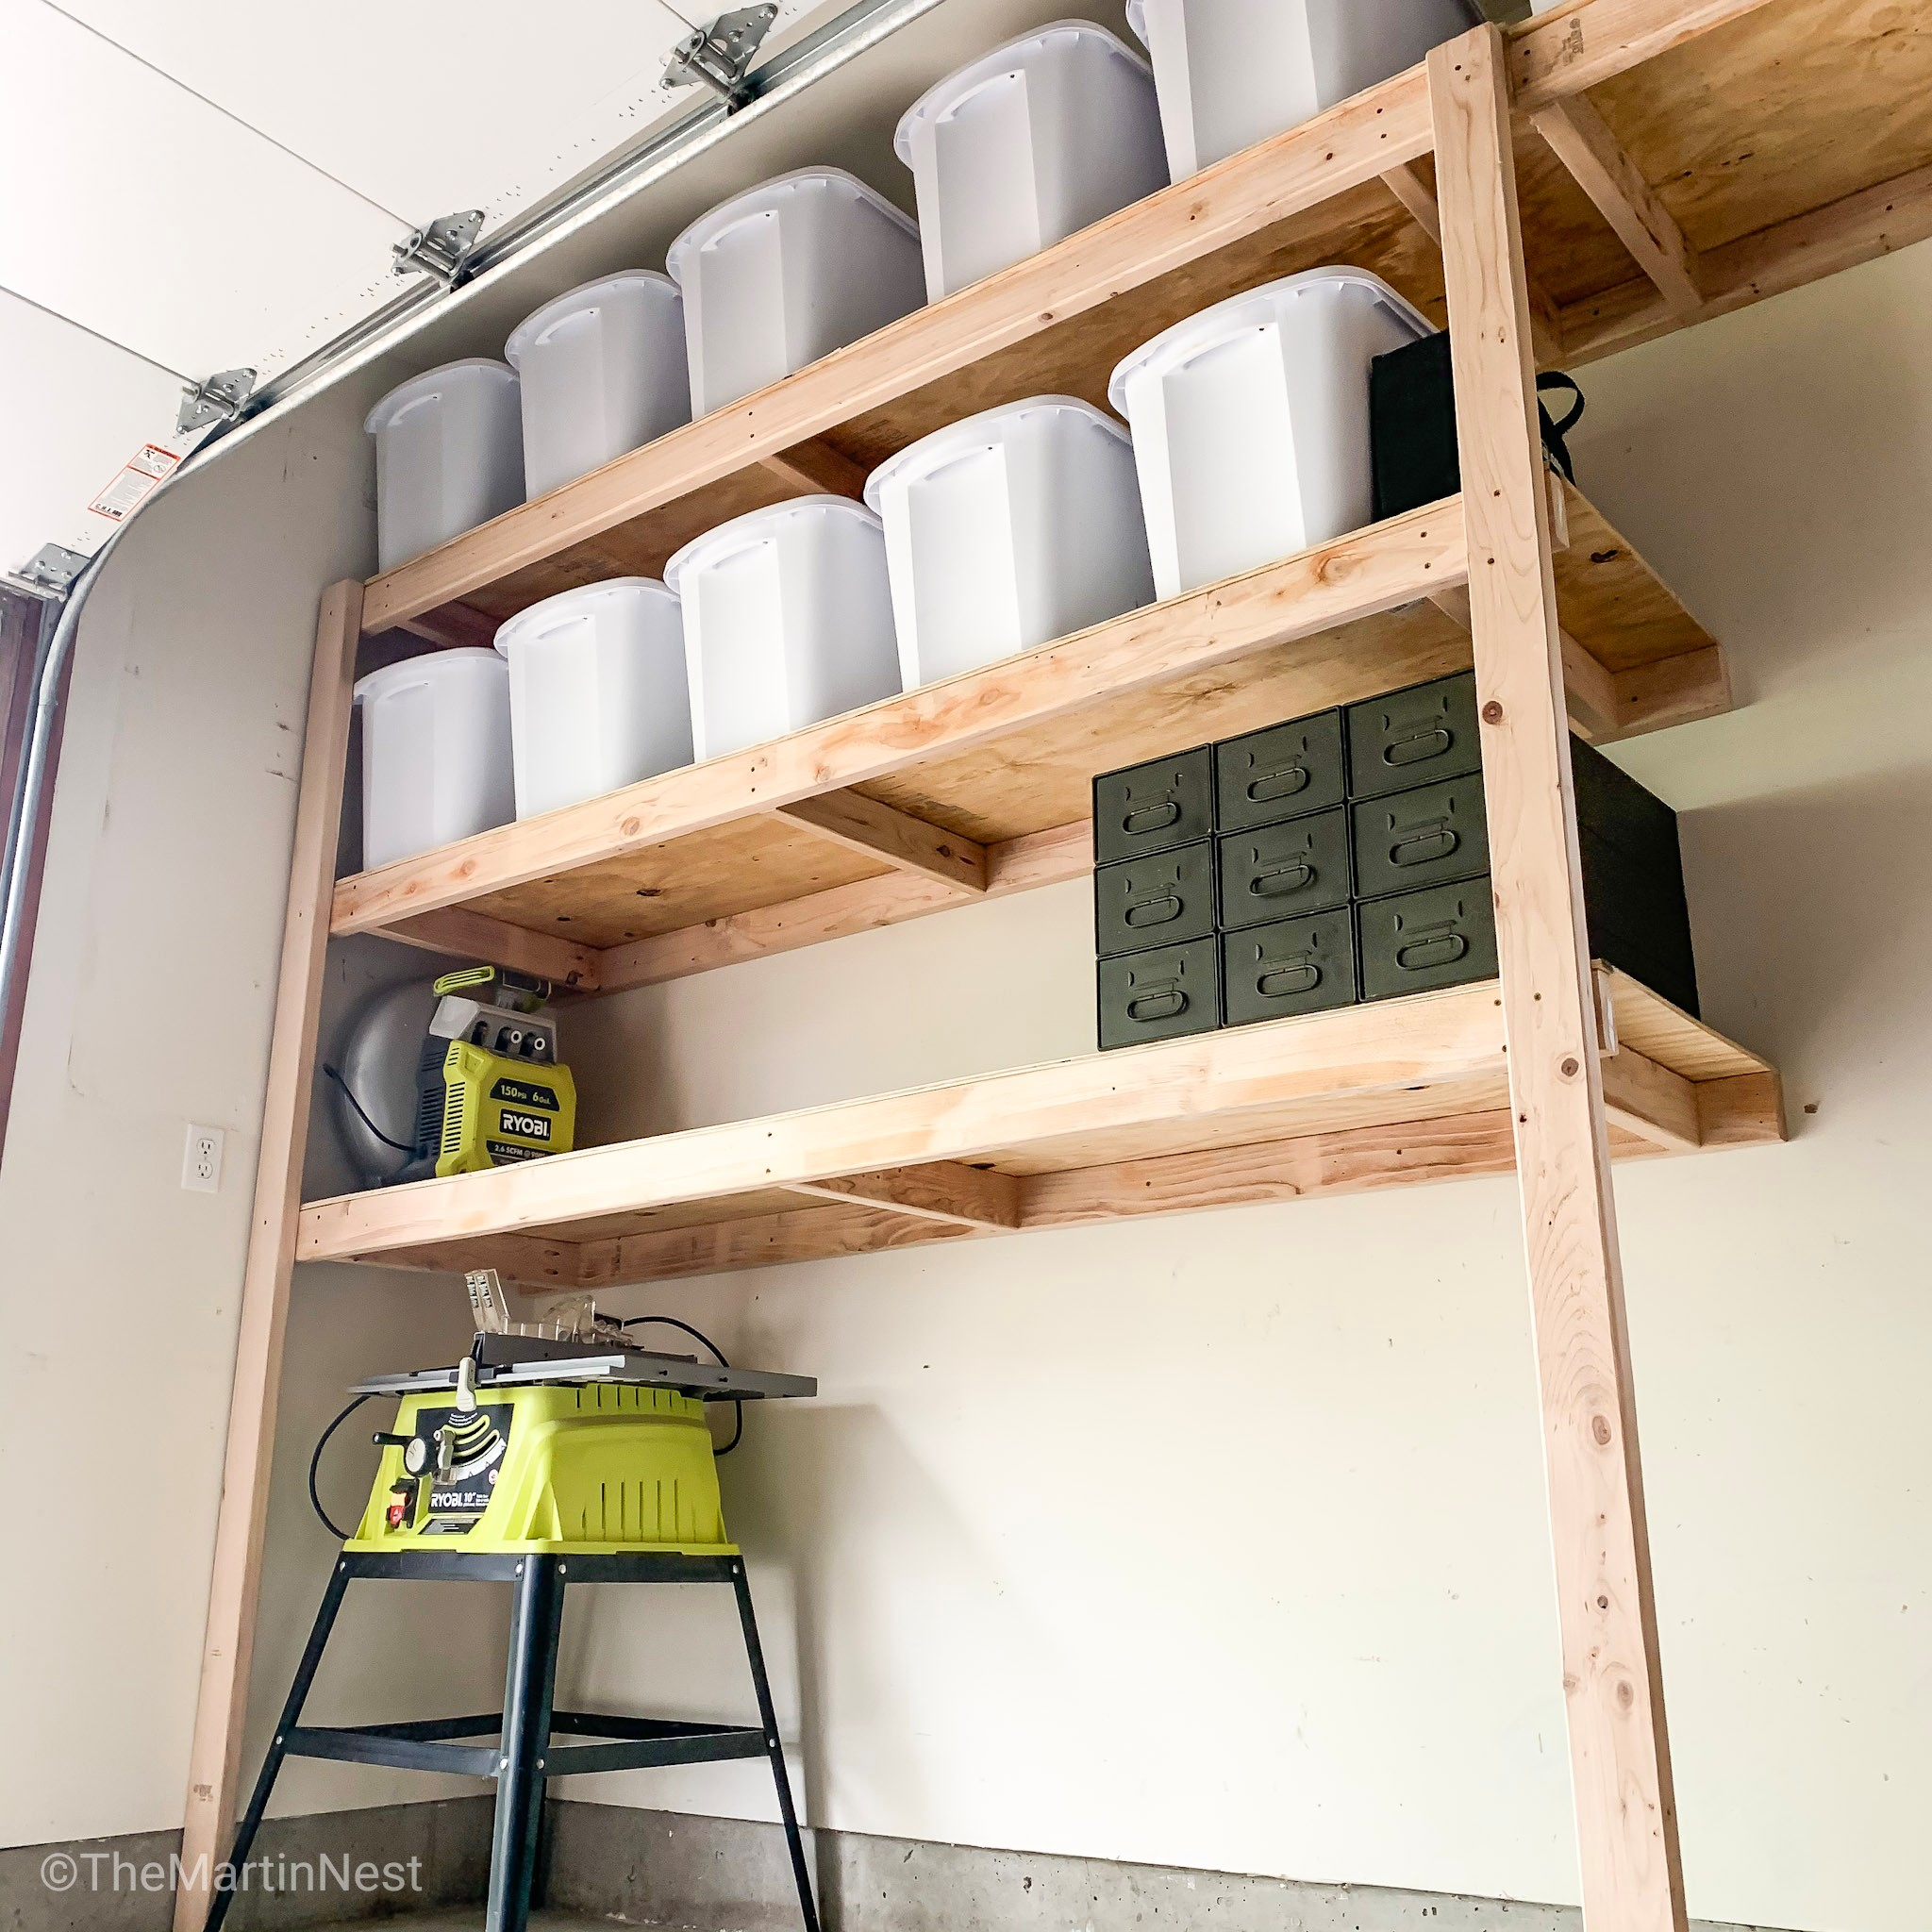 How To Build Easy Diy Storage Shelves, How To Build Shelves In Garage Wall